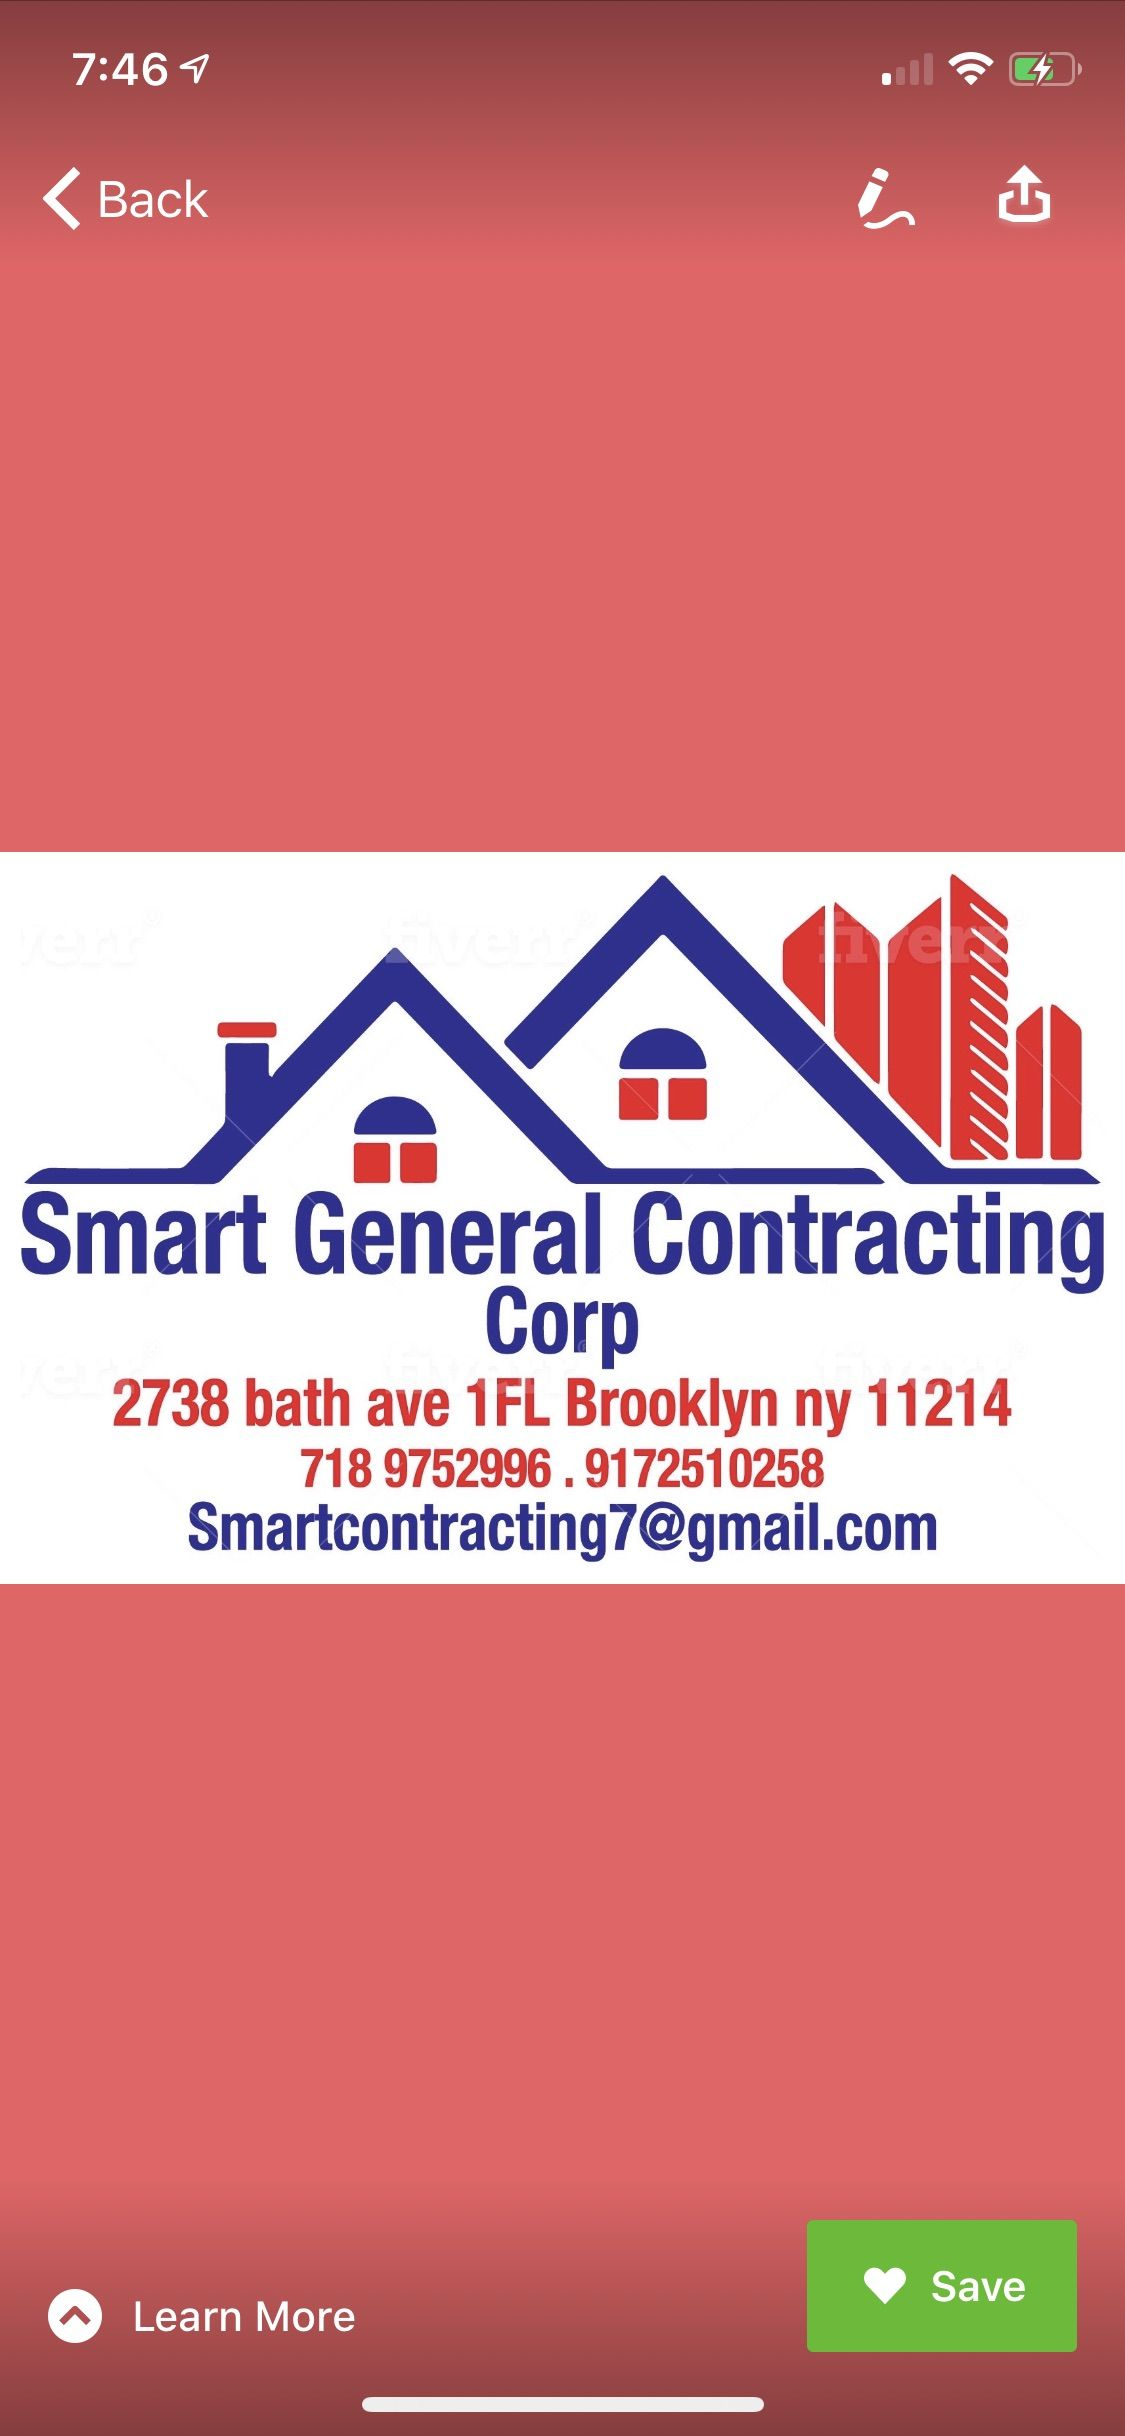 Pin By Smart General Contracting Corp On Construction In 2020 Masonry Work General Contracting Masonry Contractor